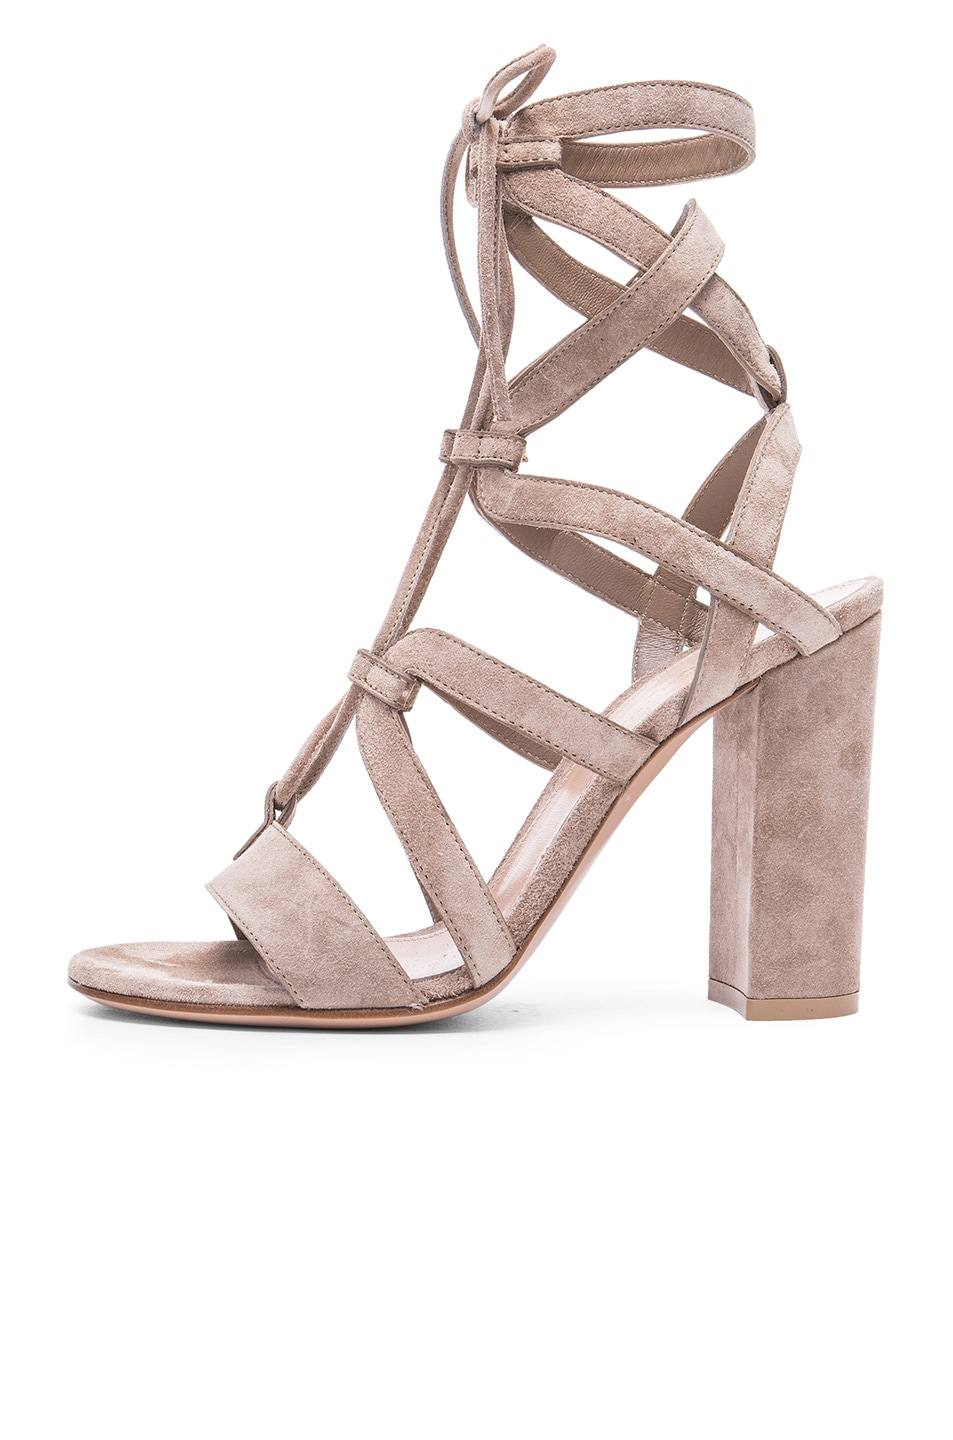 Image 5 of Gianvito Rossi Suede Lace Up Heels in Bisque